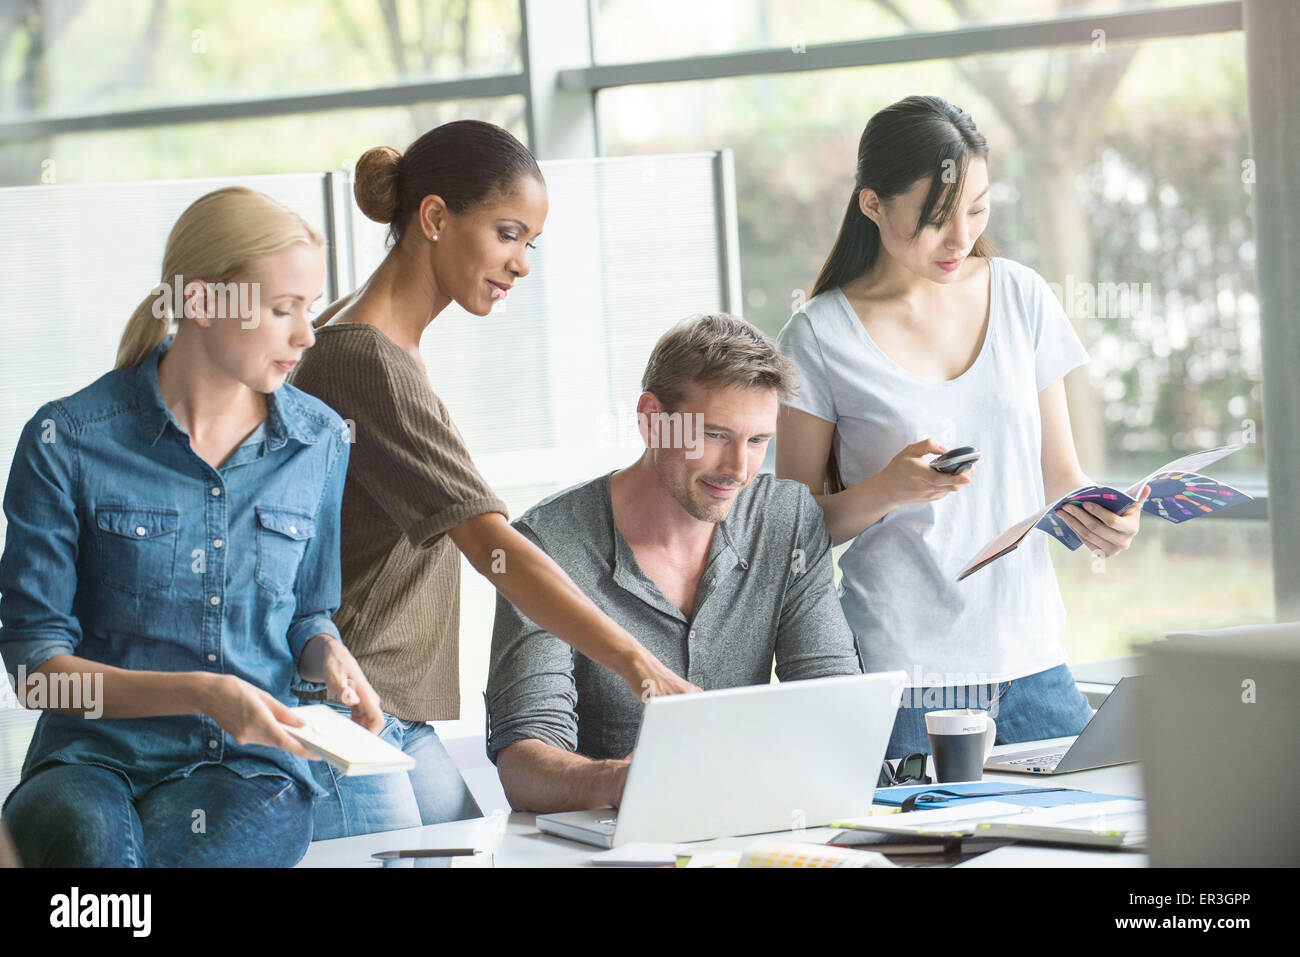 Diversity in the workplace - Stock Image